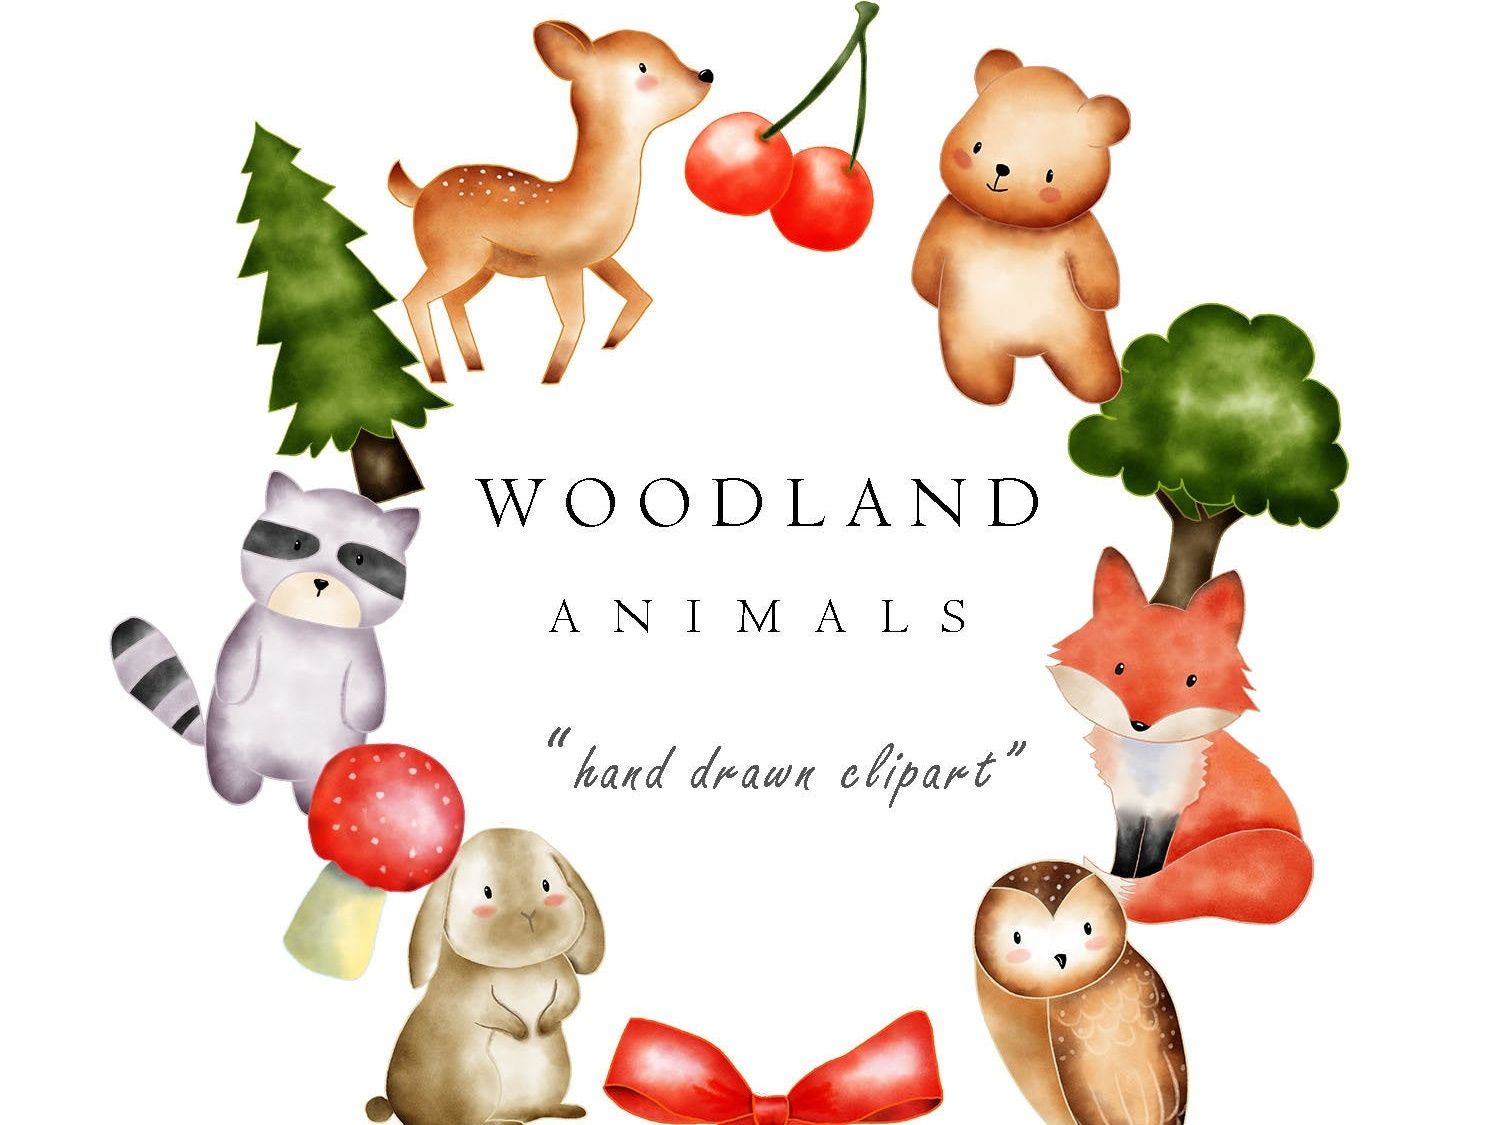 Watercolor Woodland Animal Clip Art Images by turnip on Dribbble.